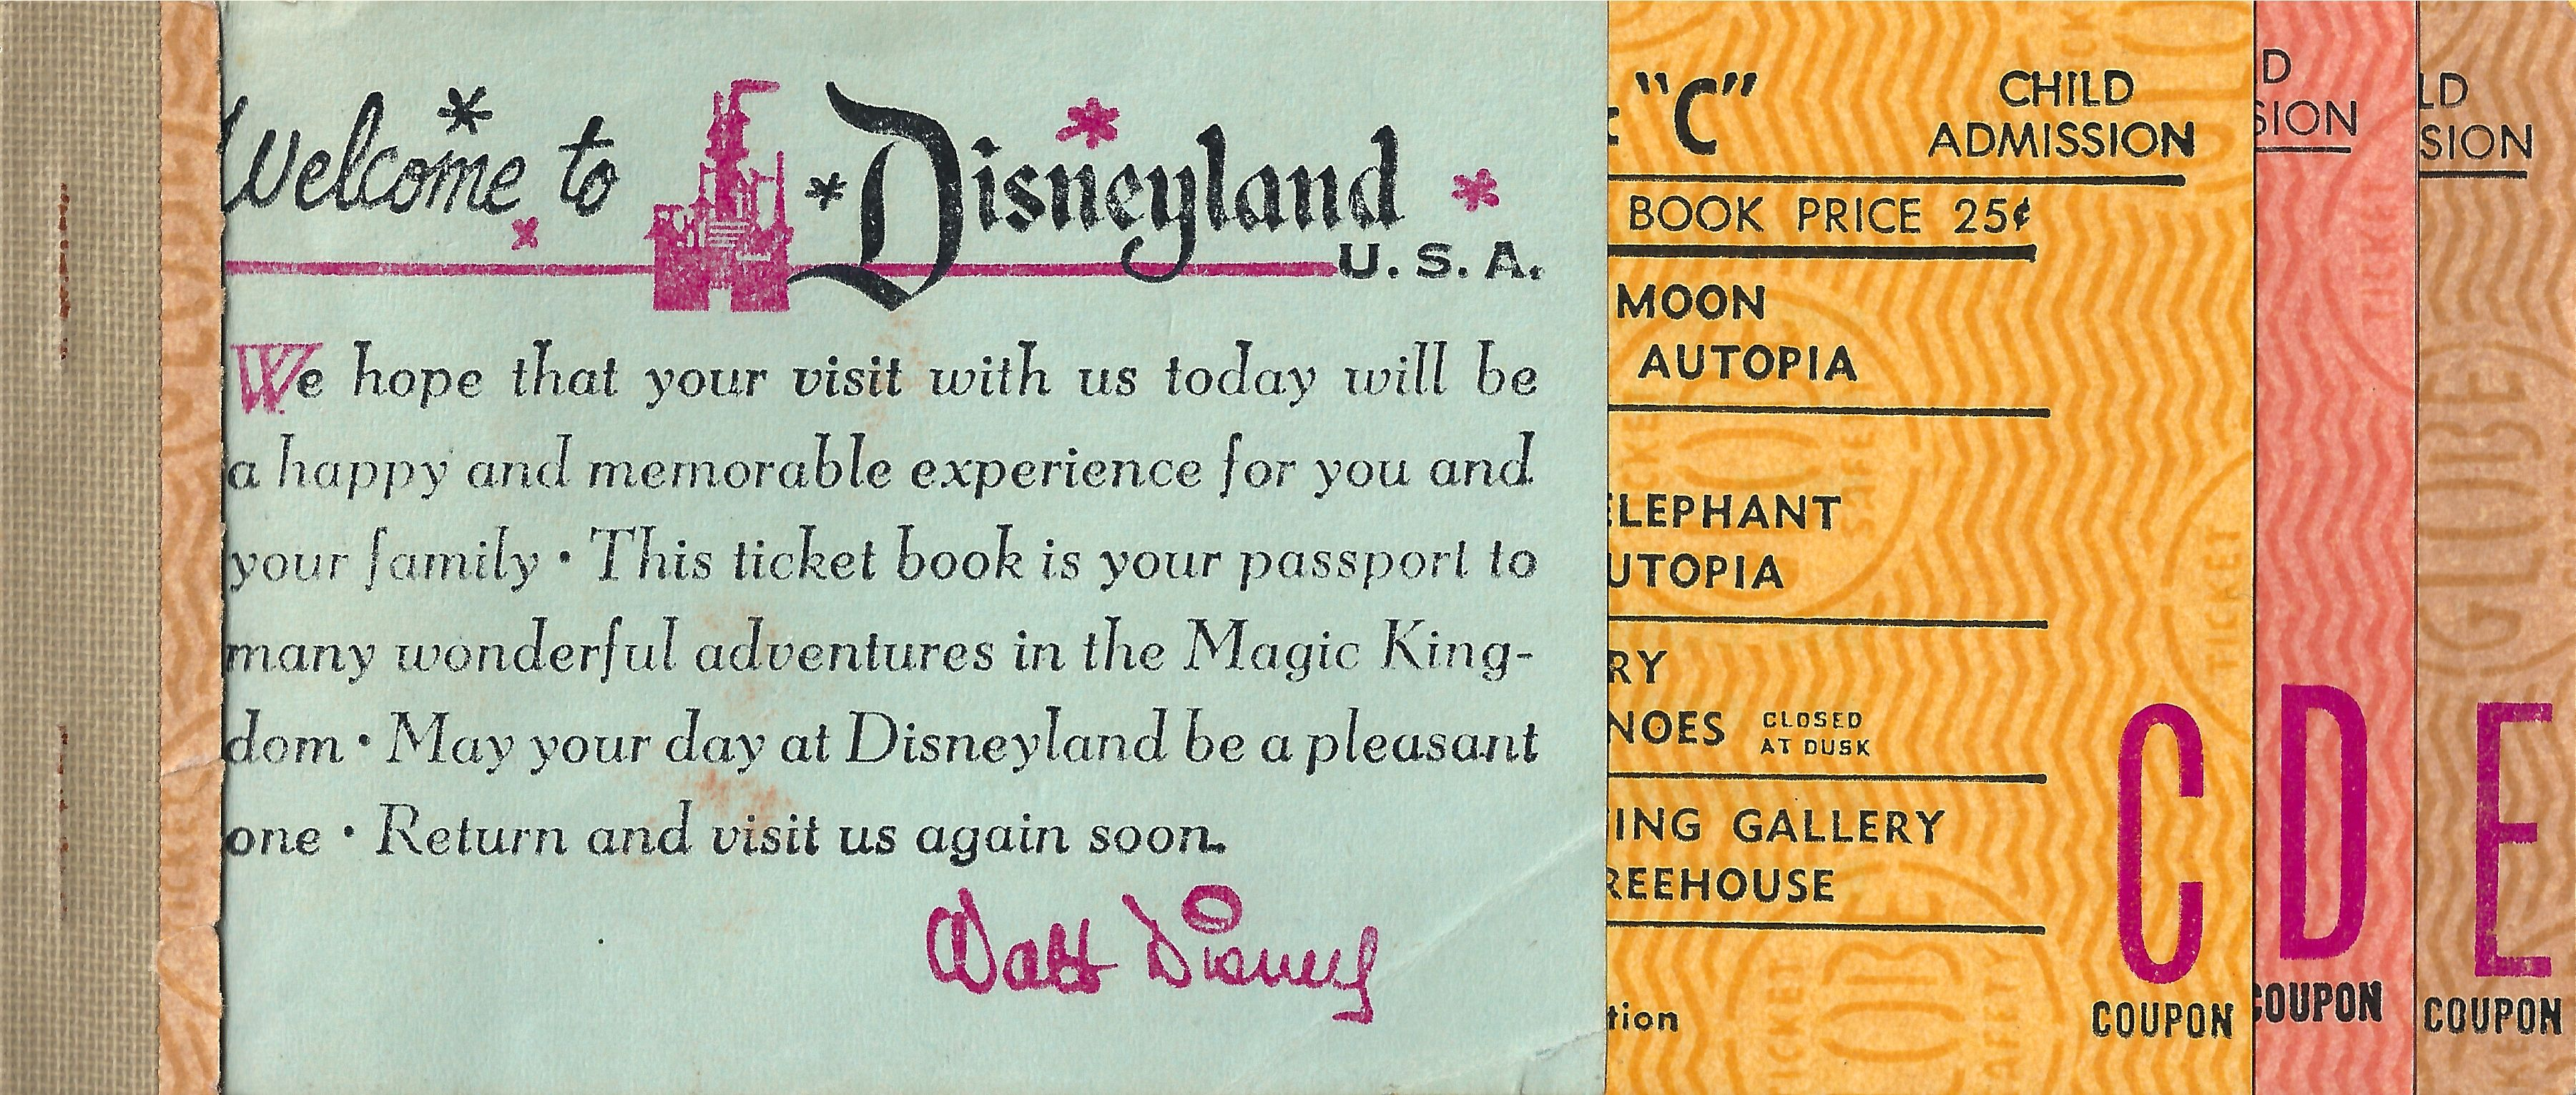 acfca9289f770a4a75ef356d78ef2a3d - How Much Is A Ticket To Get Into Disneyland